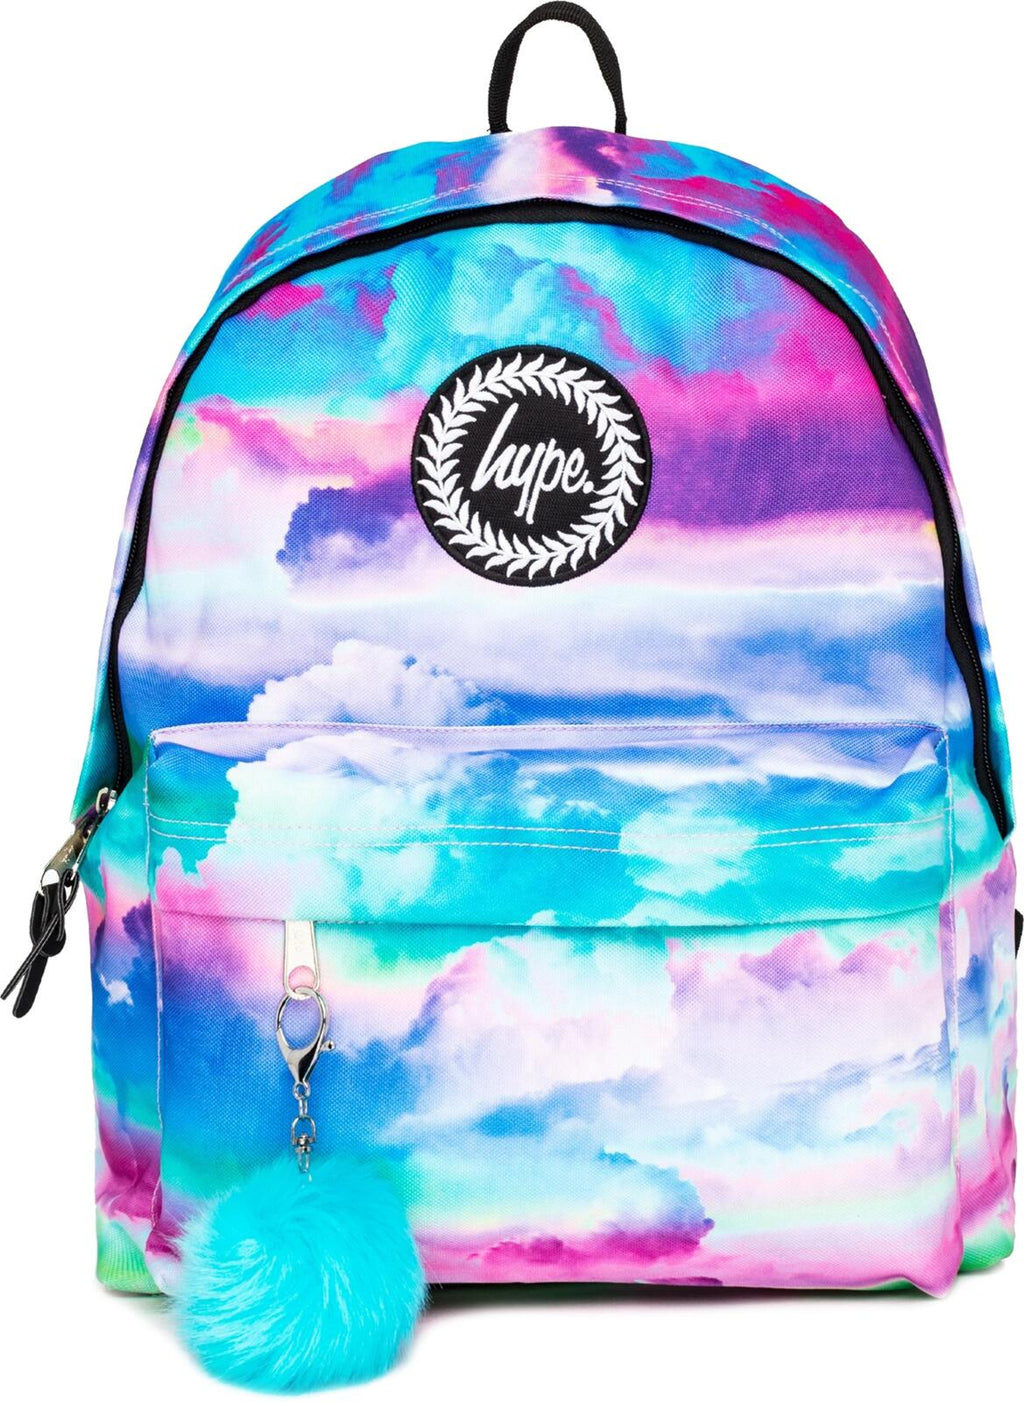 Hype Cloud Hues Pom Pom Backpack Bag Multi